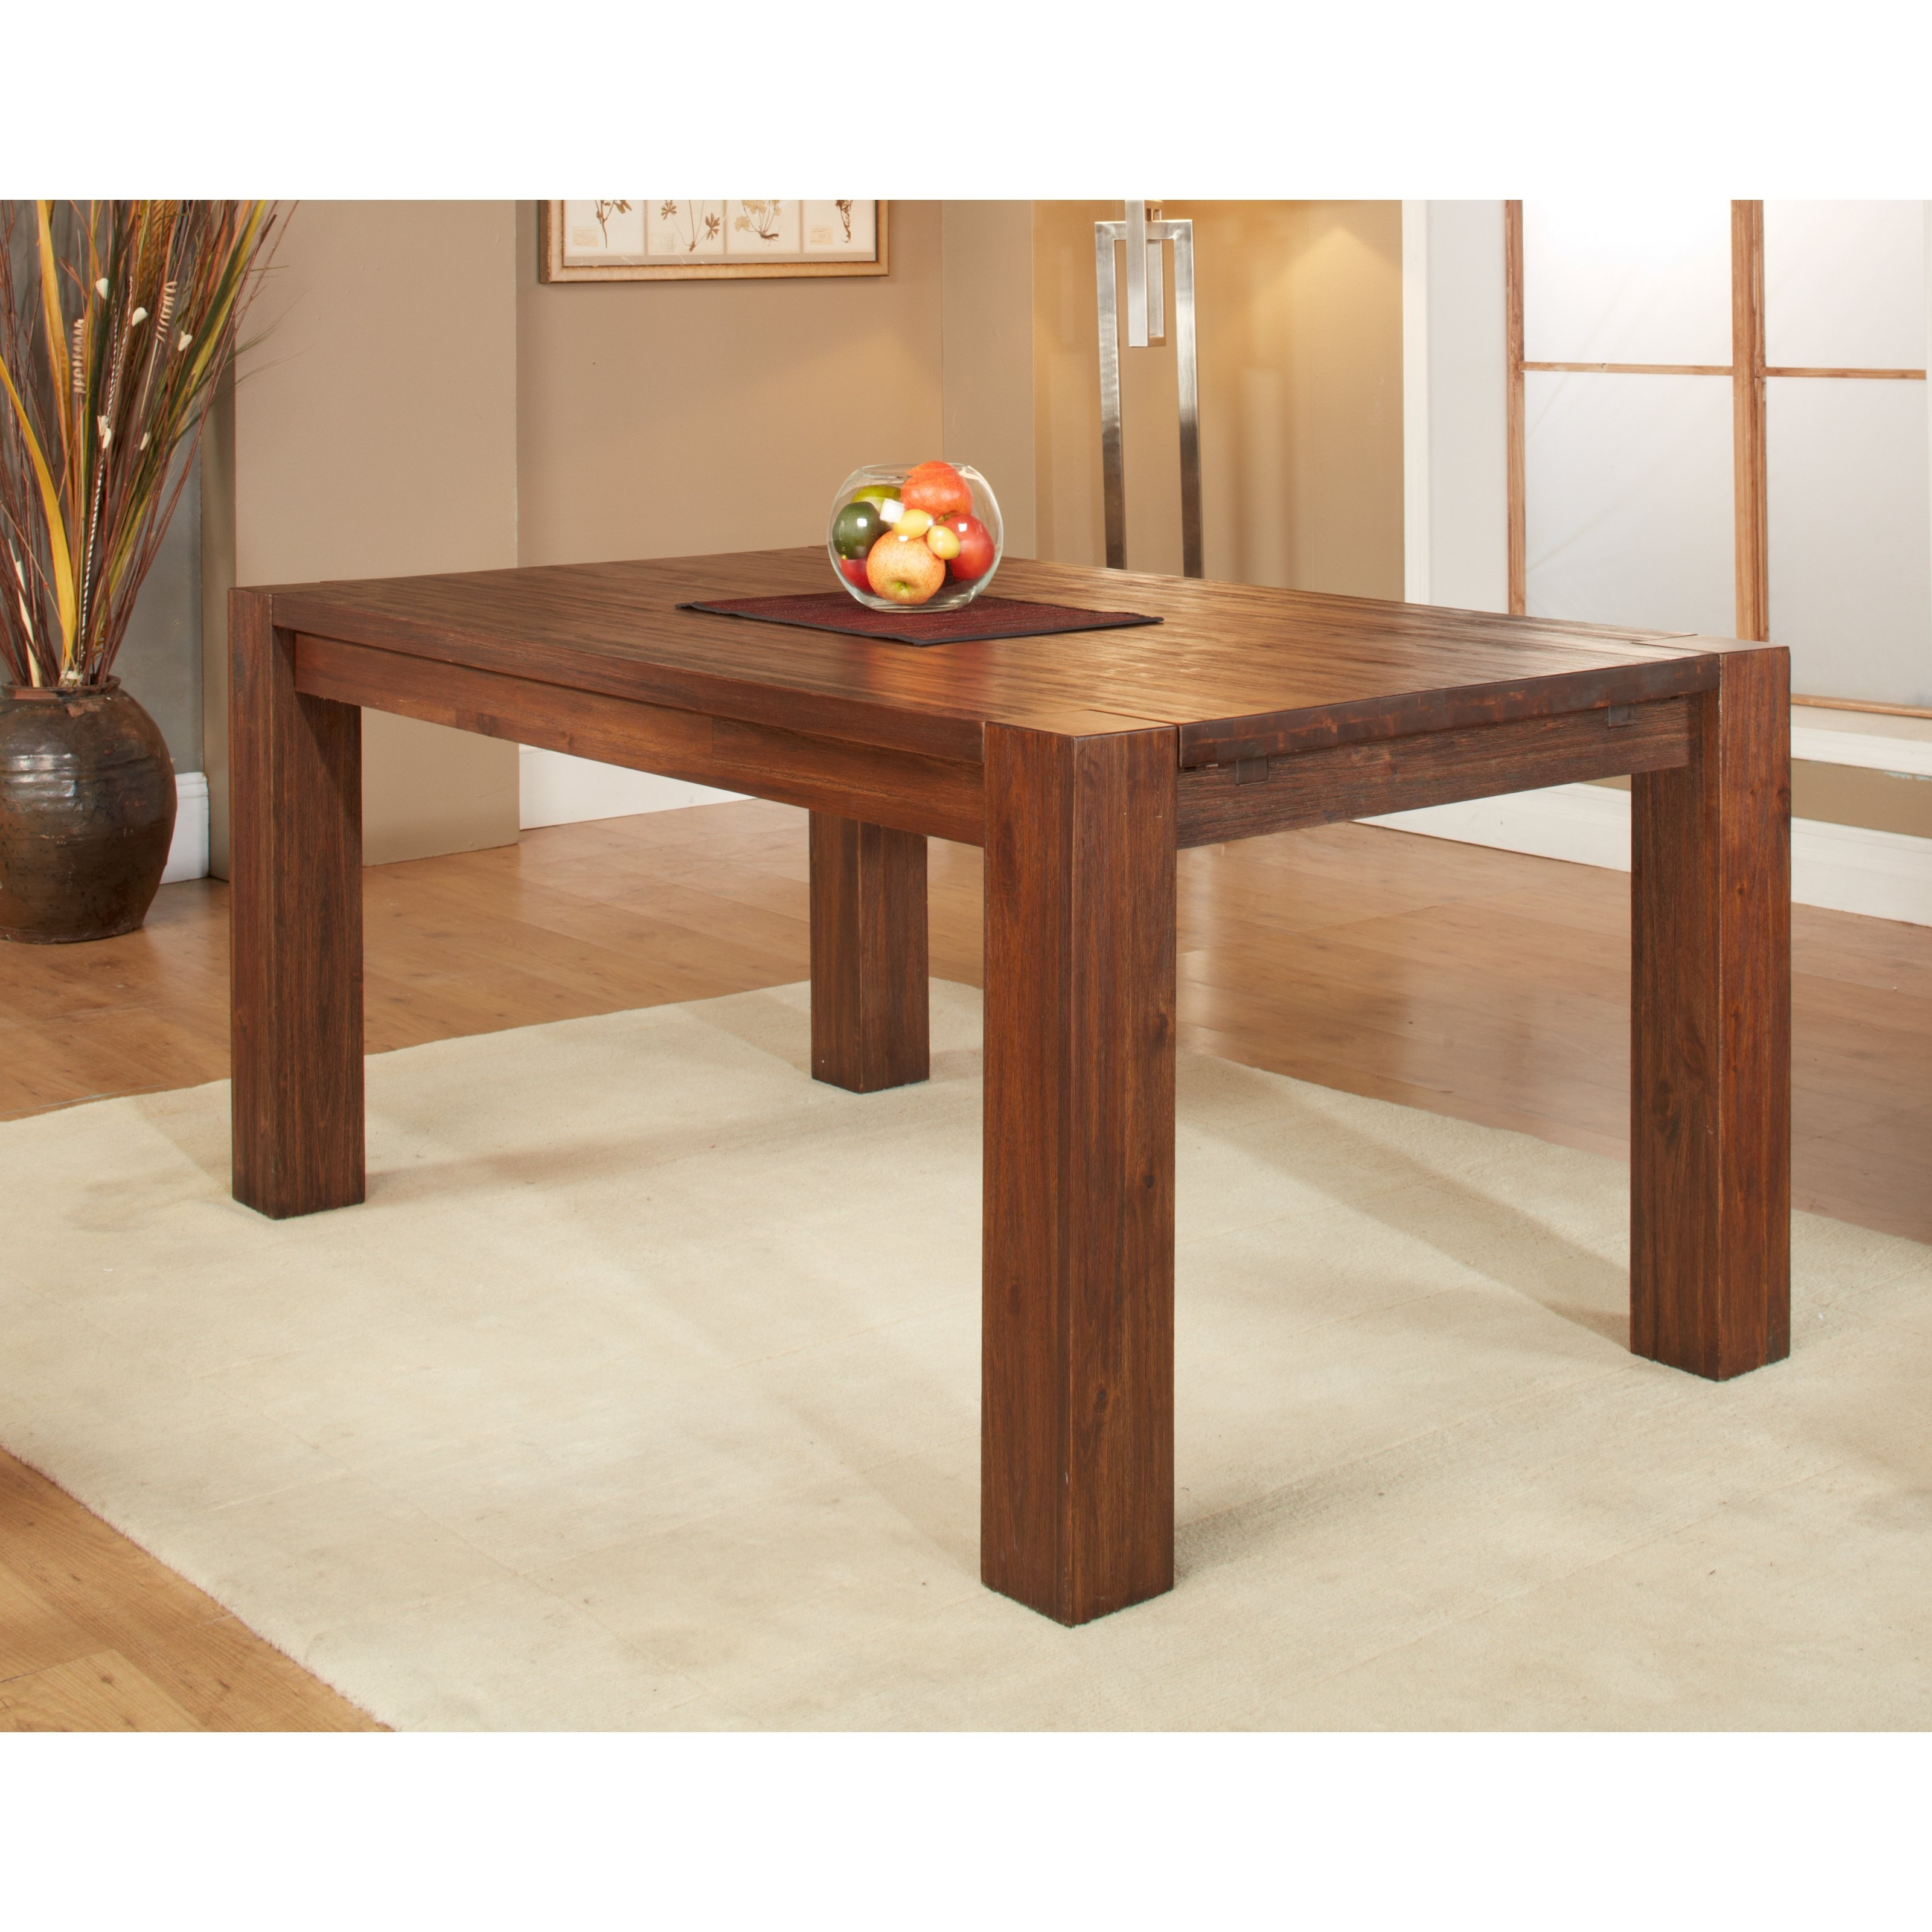 Dark Wood Extending Dining Tables Pertaining To Newest Expanding Dining Table – Inspirational Home Interior Design Ideas (View 21 of 25)